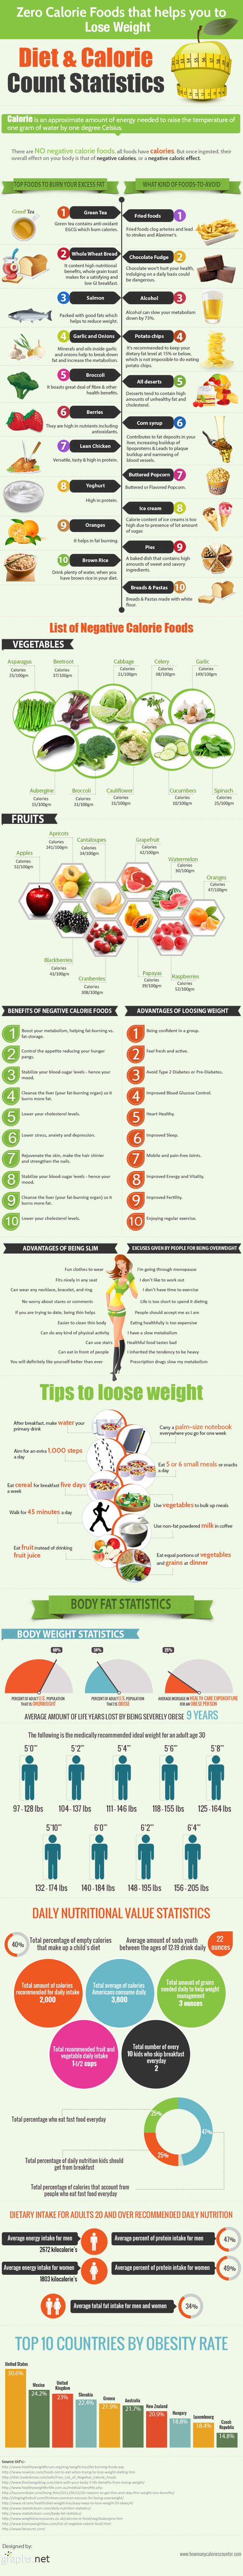 Zero Calorie Foods That Help you to Lose Weight (Infographic) | How Many Calories Counter | Fitness | Scoop.it